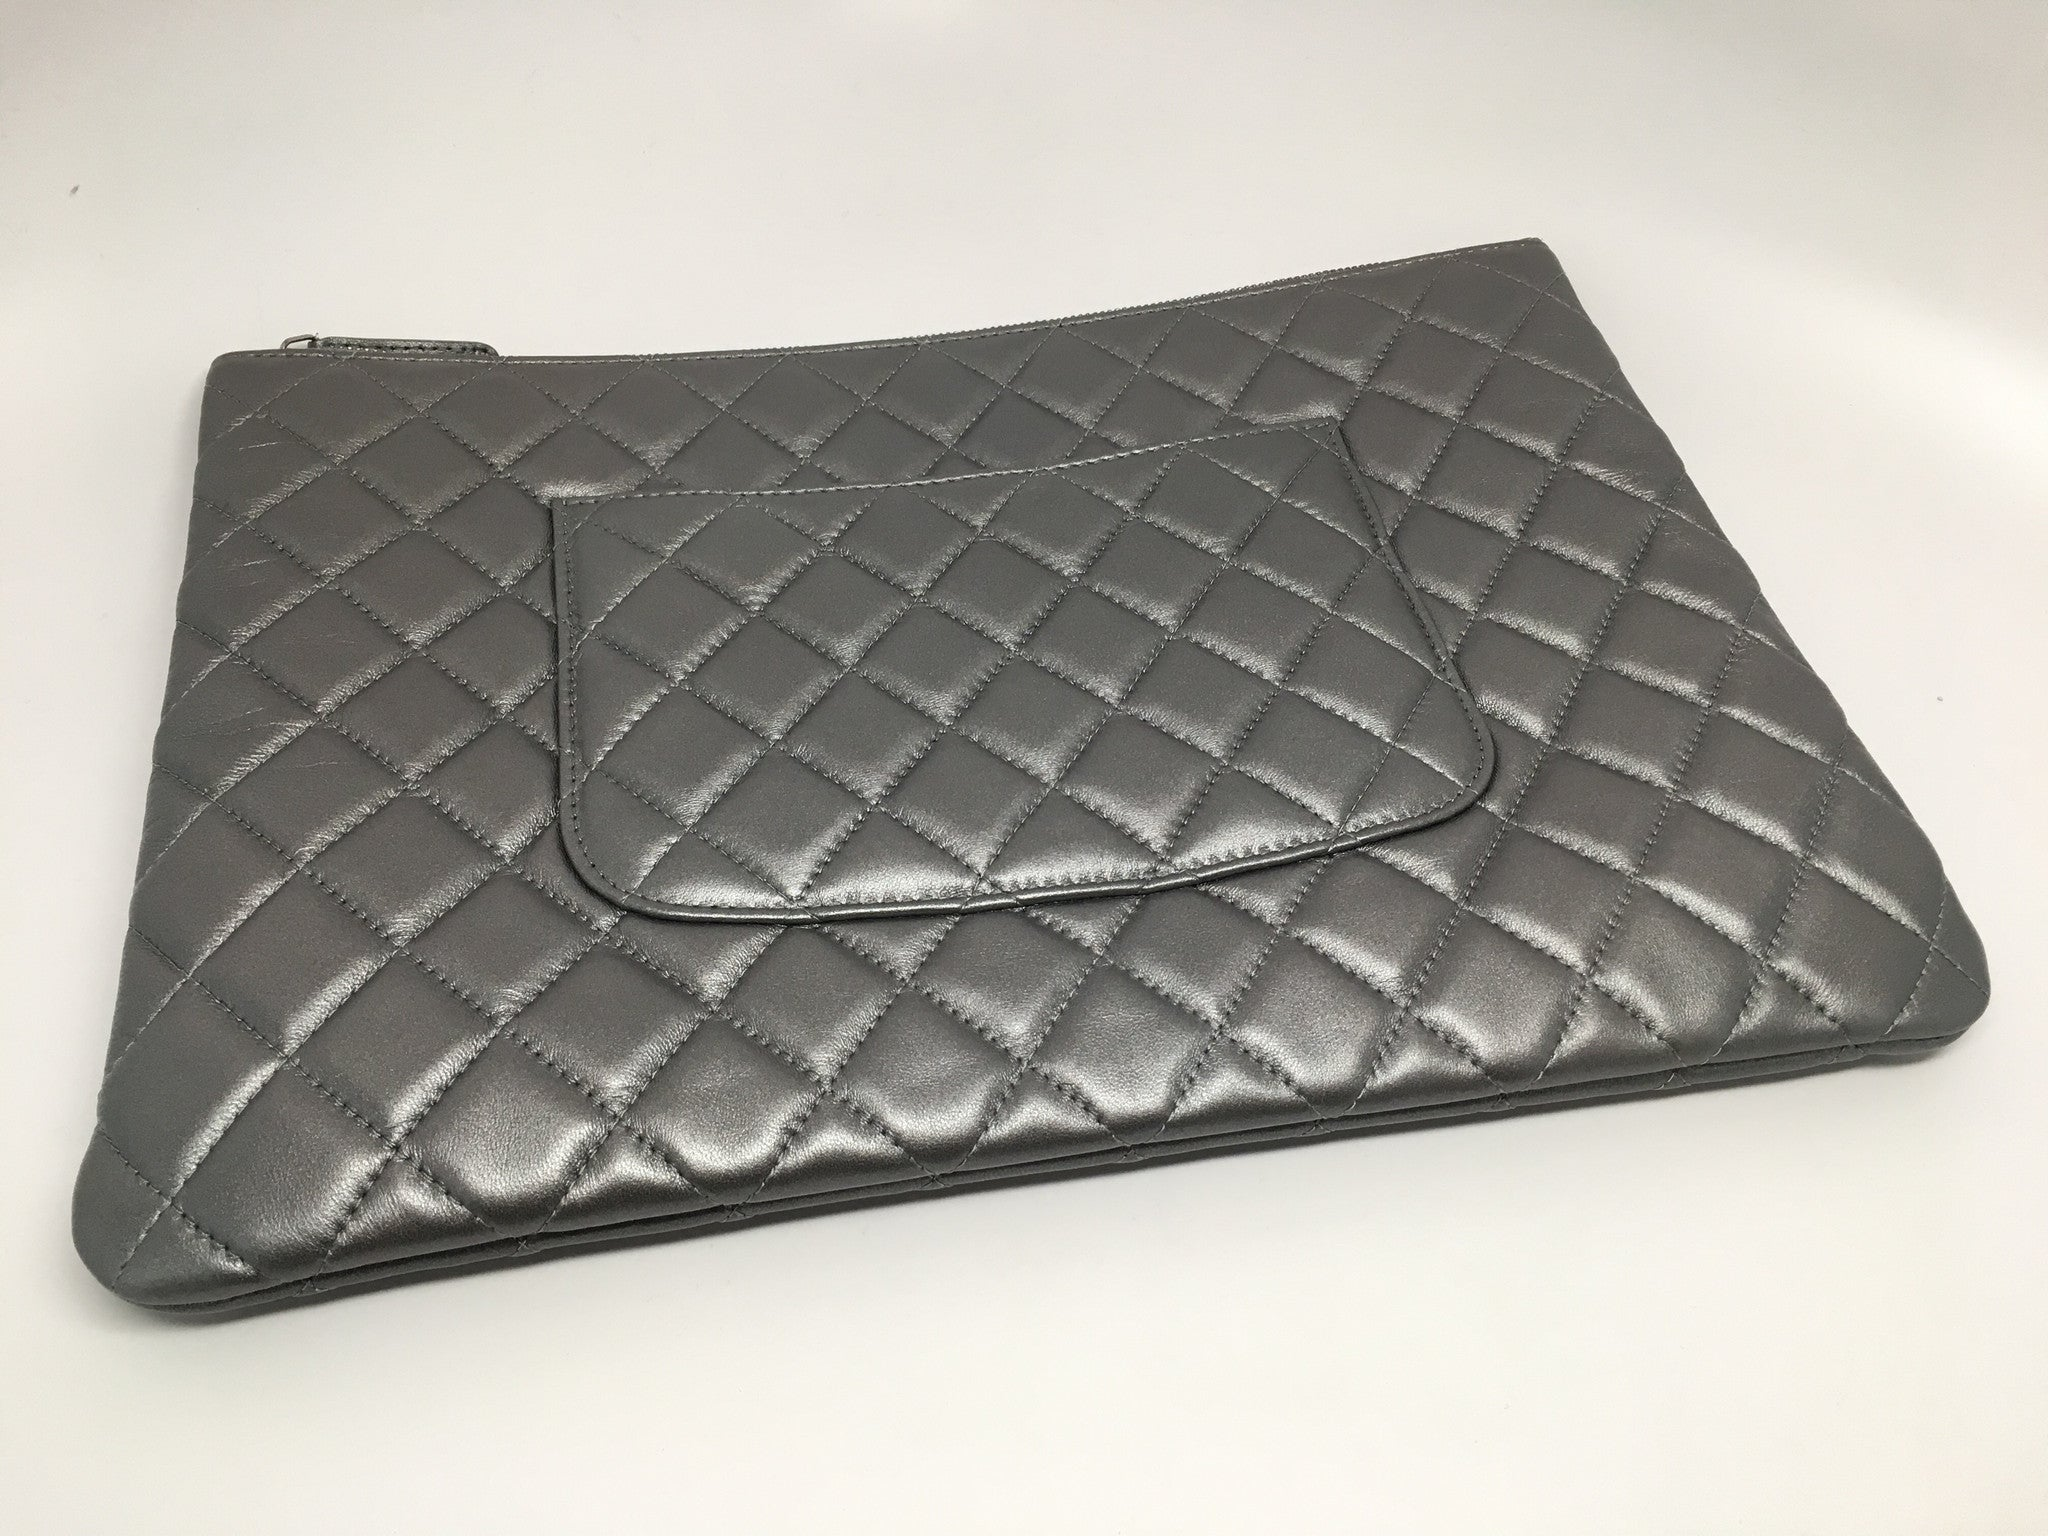 CHANEL SILVER/GRAY QUILTED LARGE O CASE IN LAMBSKIN LEATHER